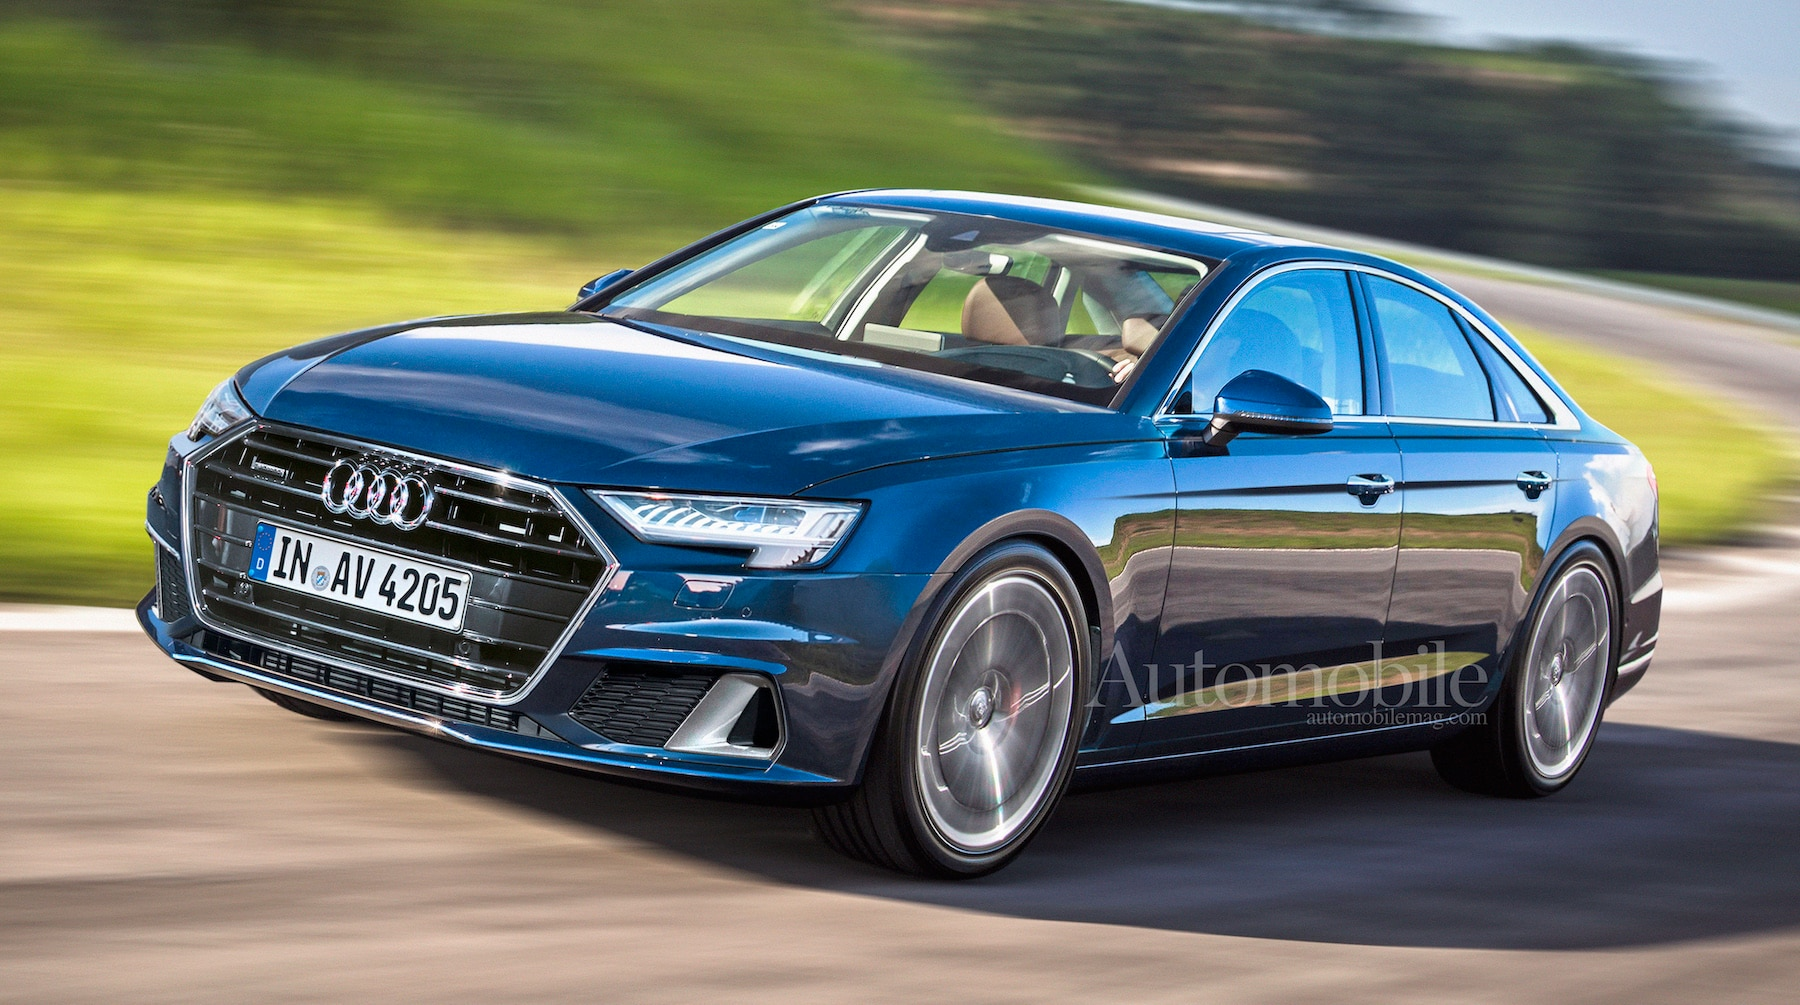 The Fate of the Next Audi A4 Has Been Decided—It Stays a ...